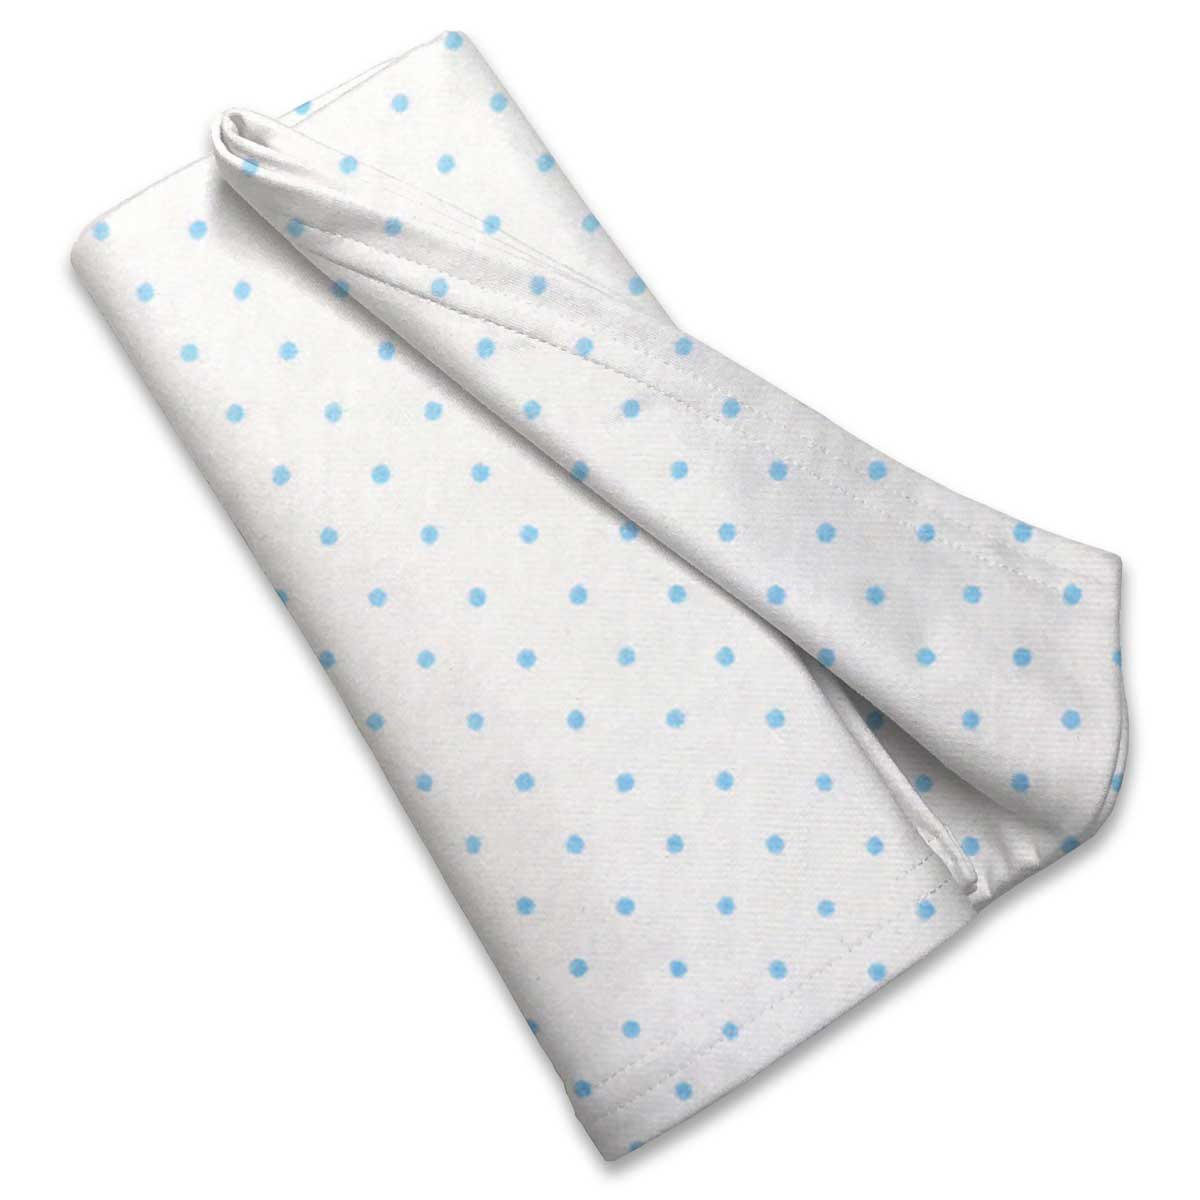 Blue Pindot Receiving Blanket